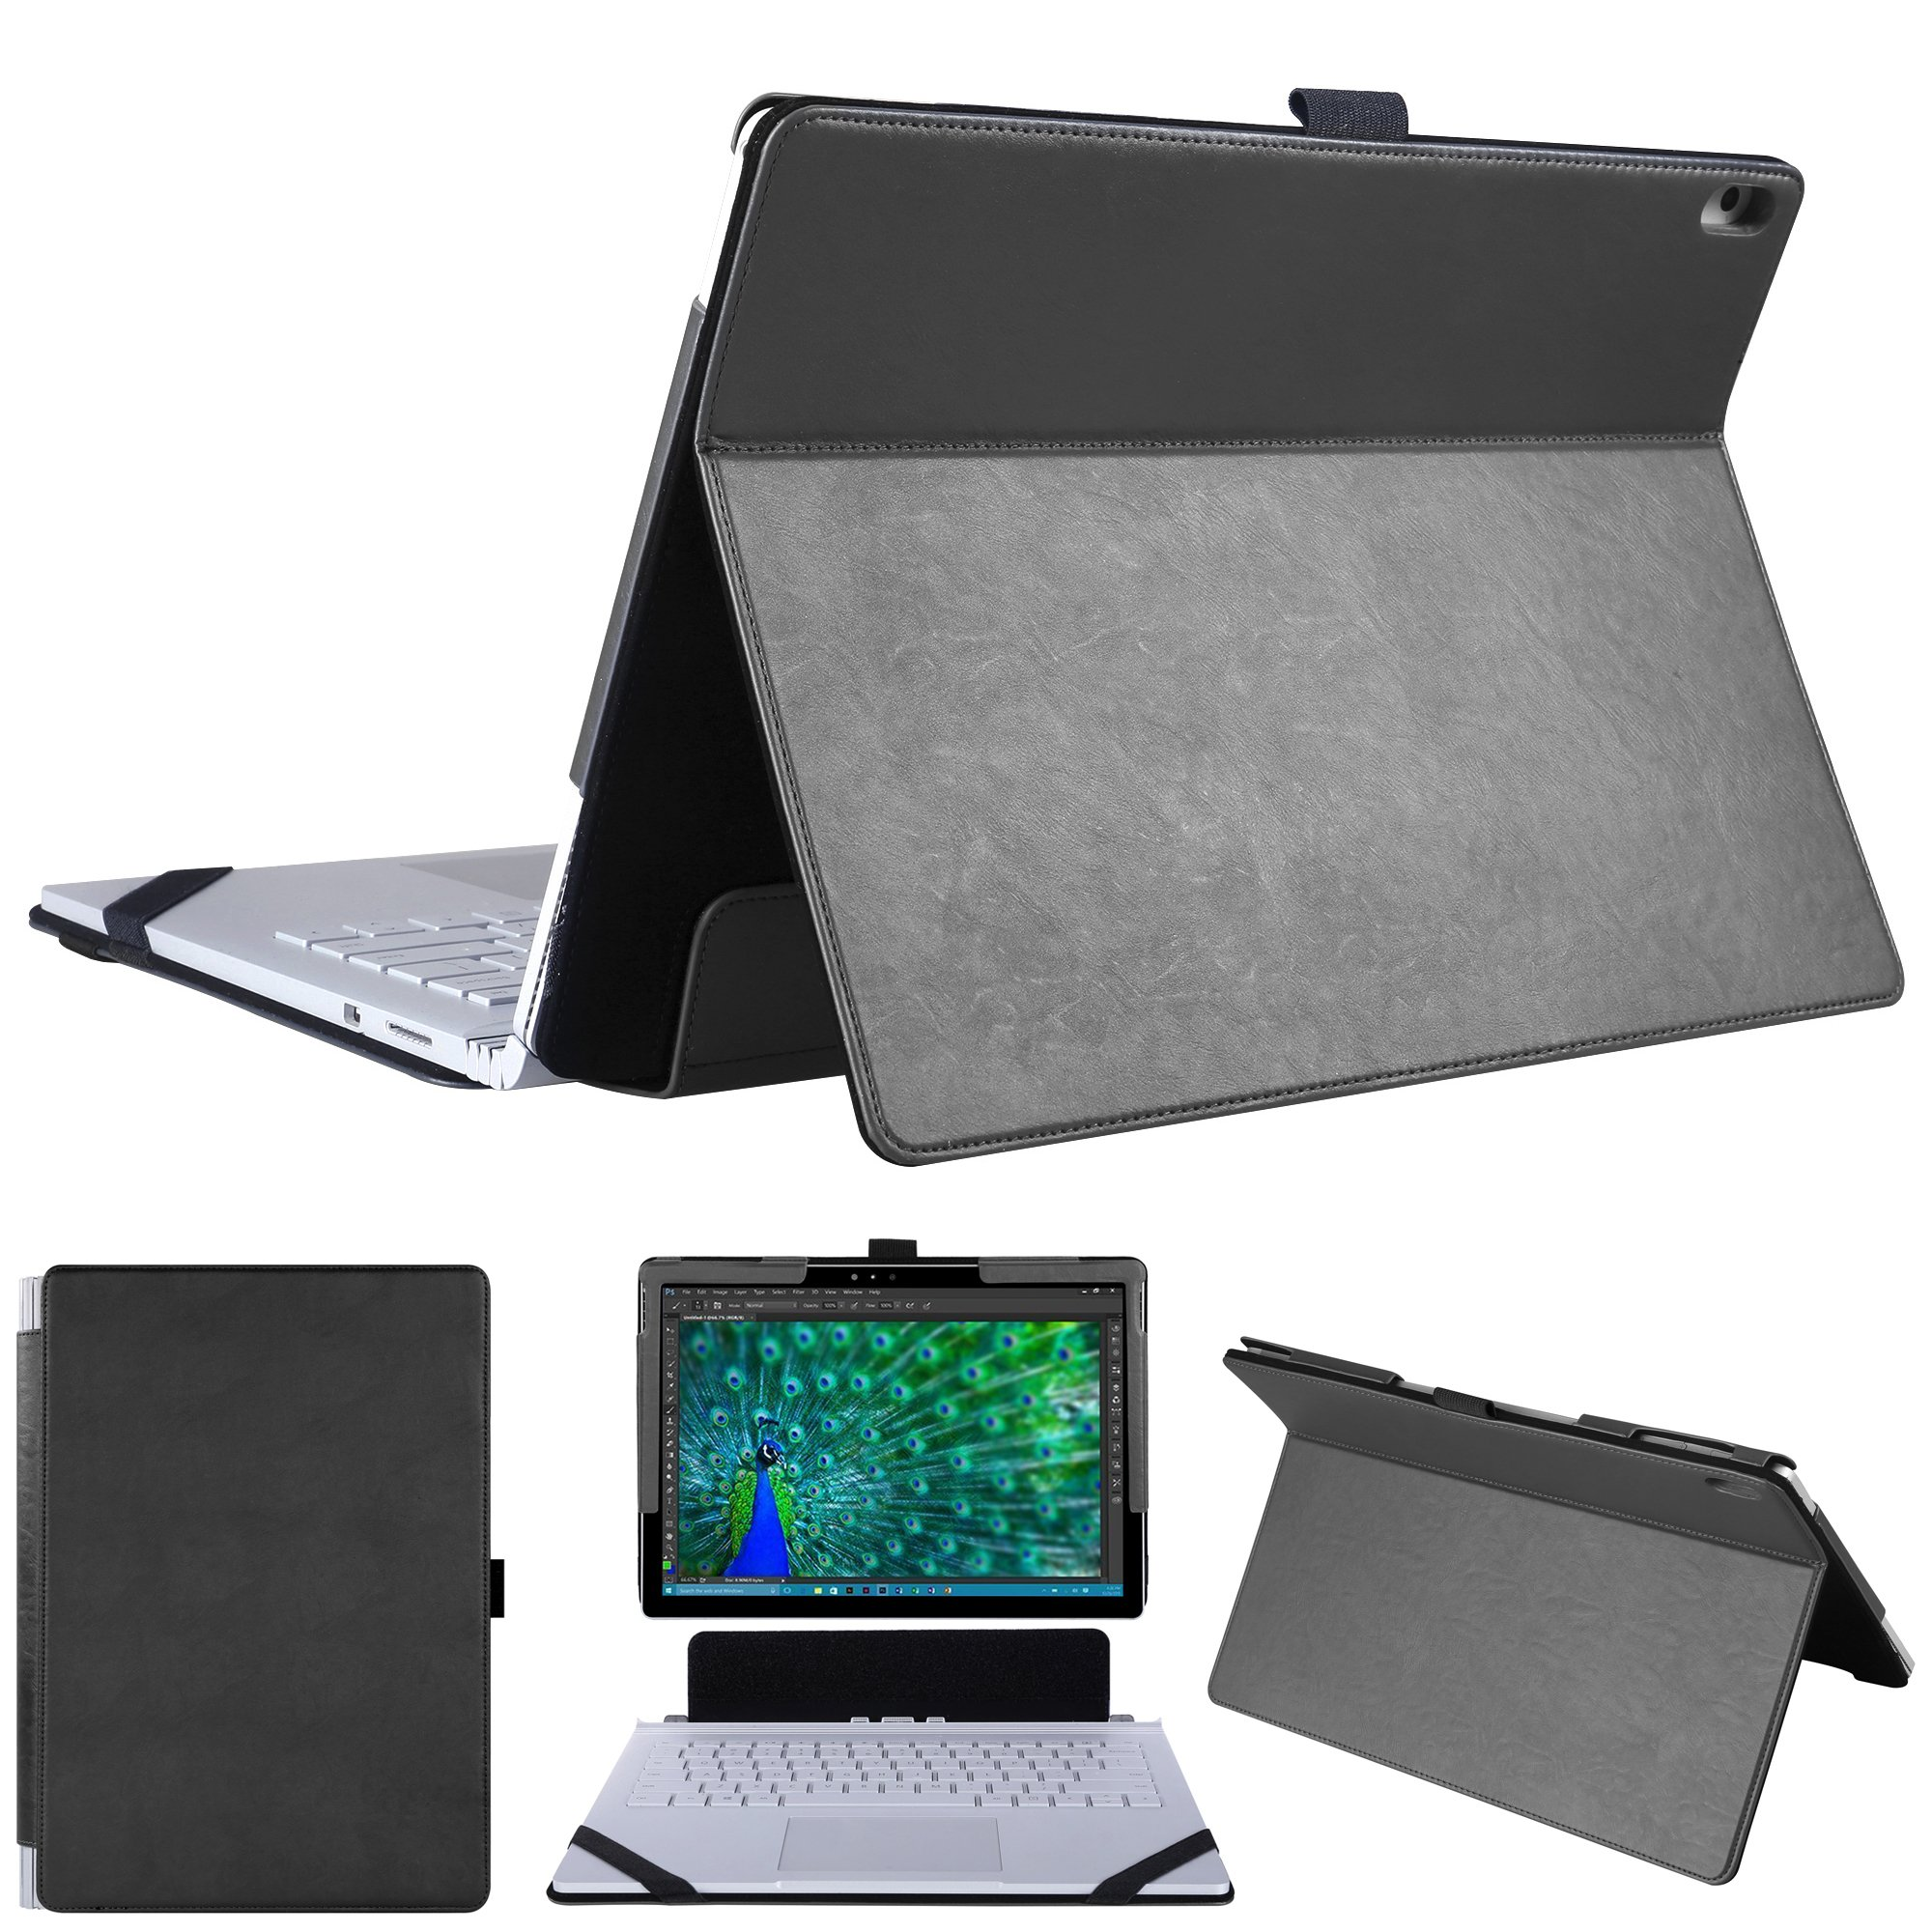 hongyixun Surface Book 13.5 Inch Case, 2 in 1 Kickstand Book Style Cover for Microsoft Surface Book 13.5 Inch Laptop Only-Black